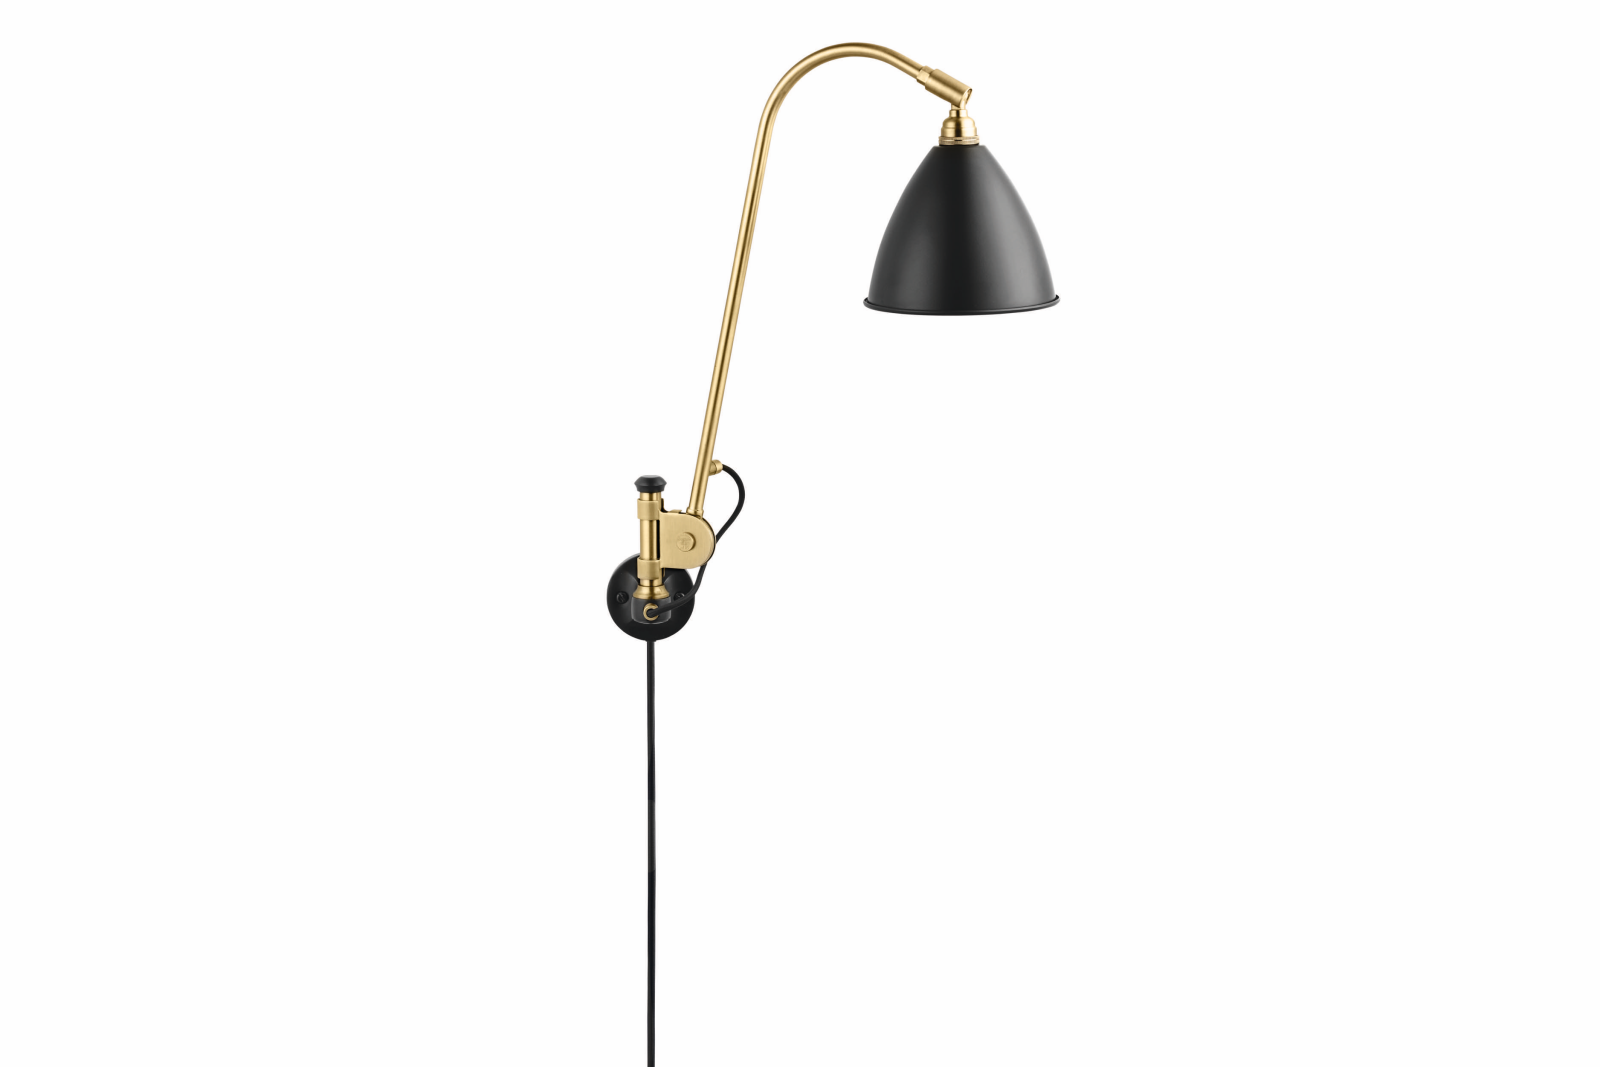 Bestlite BL6 Wired Wall Light Charcoal Black and Brass